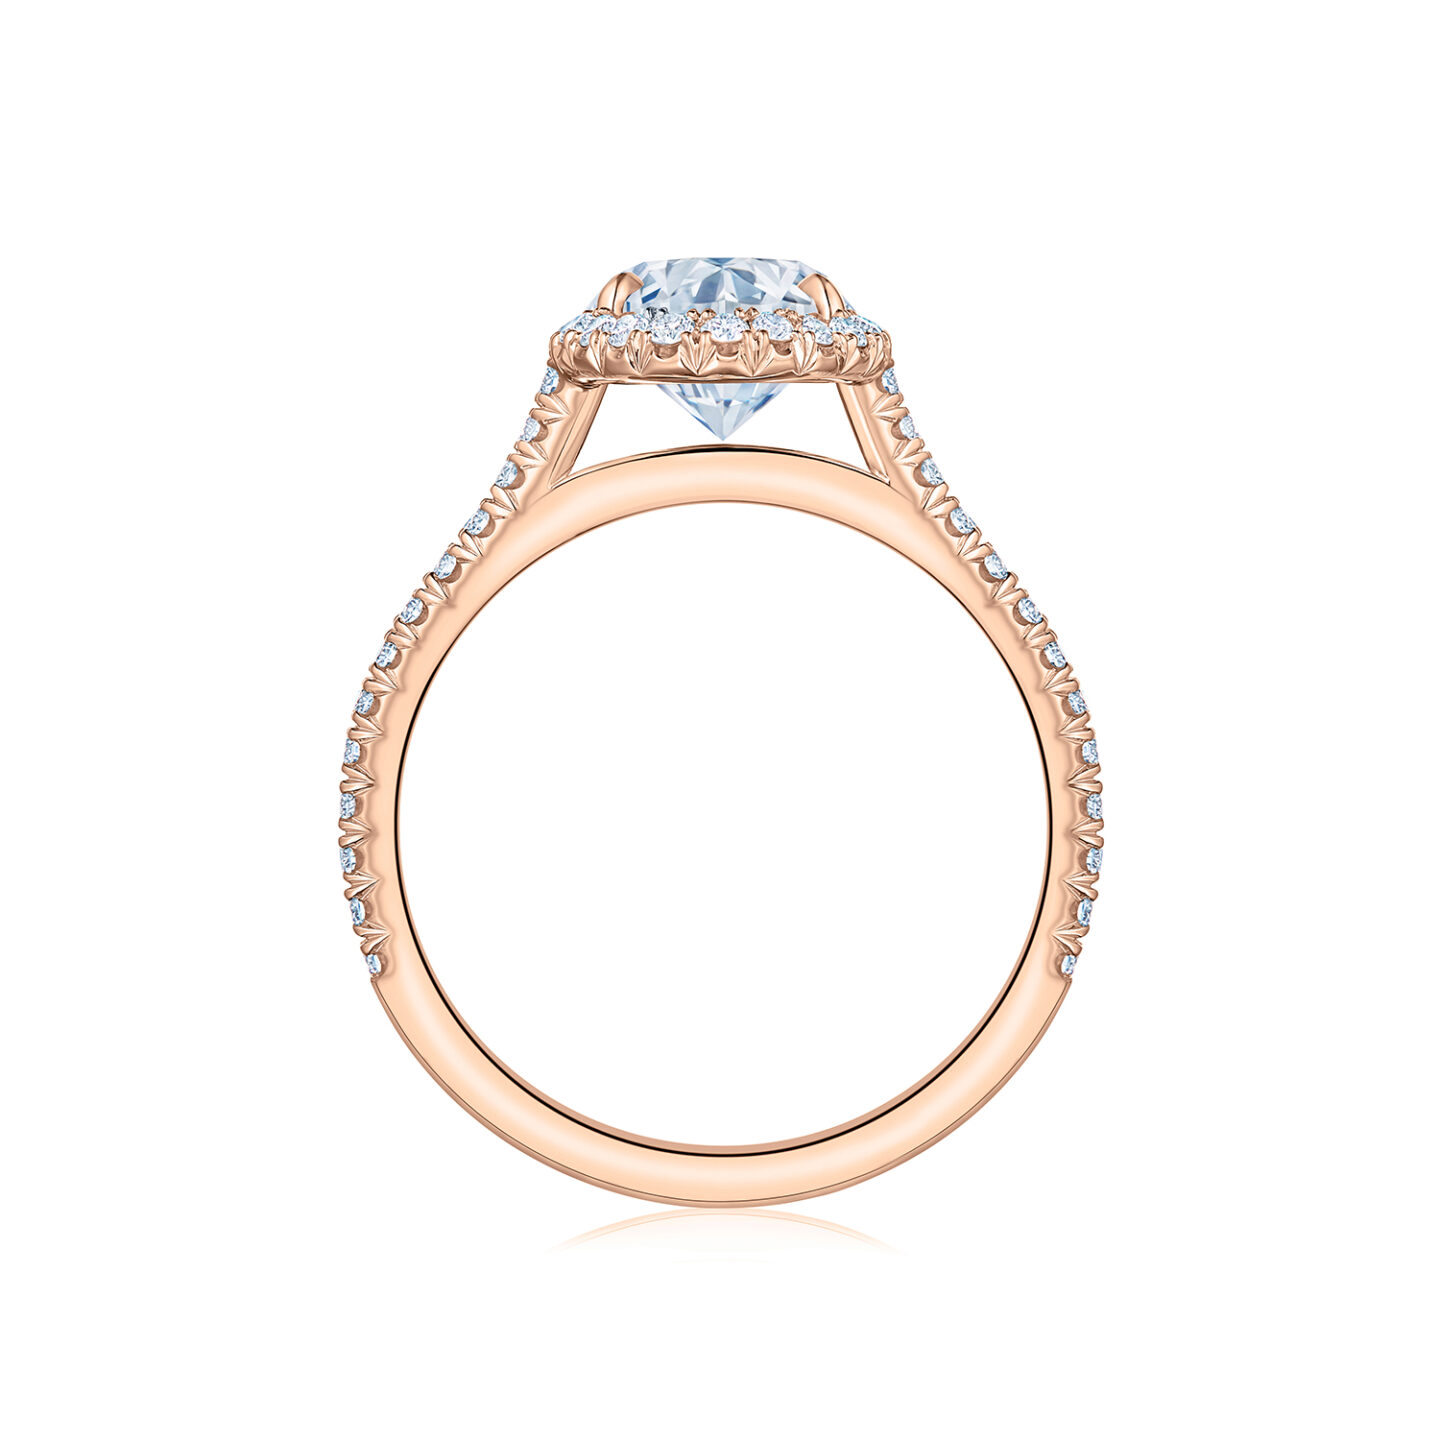 The Kwiat Setting Oval Diamond Engagement Ring With A Thin Pave Diamond Halo In 18k Rose